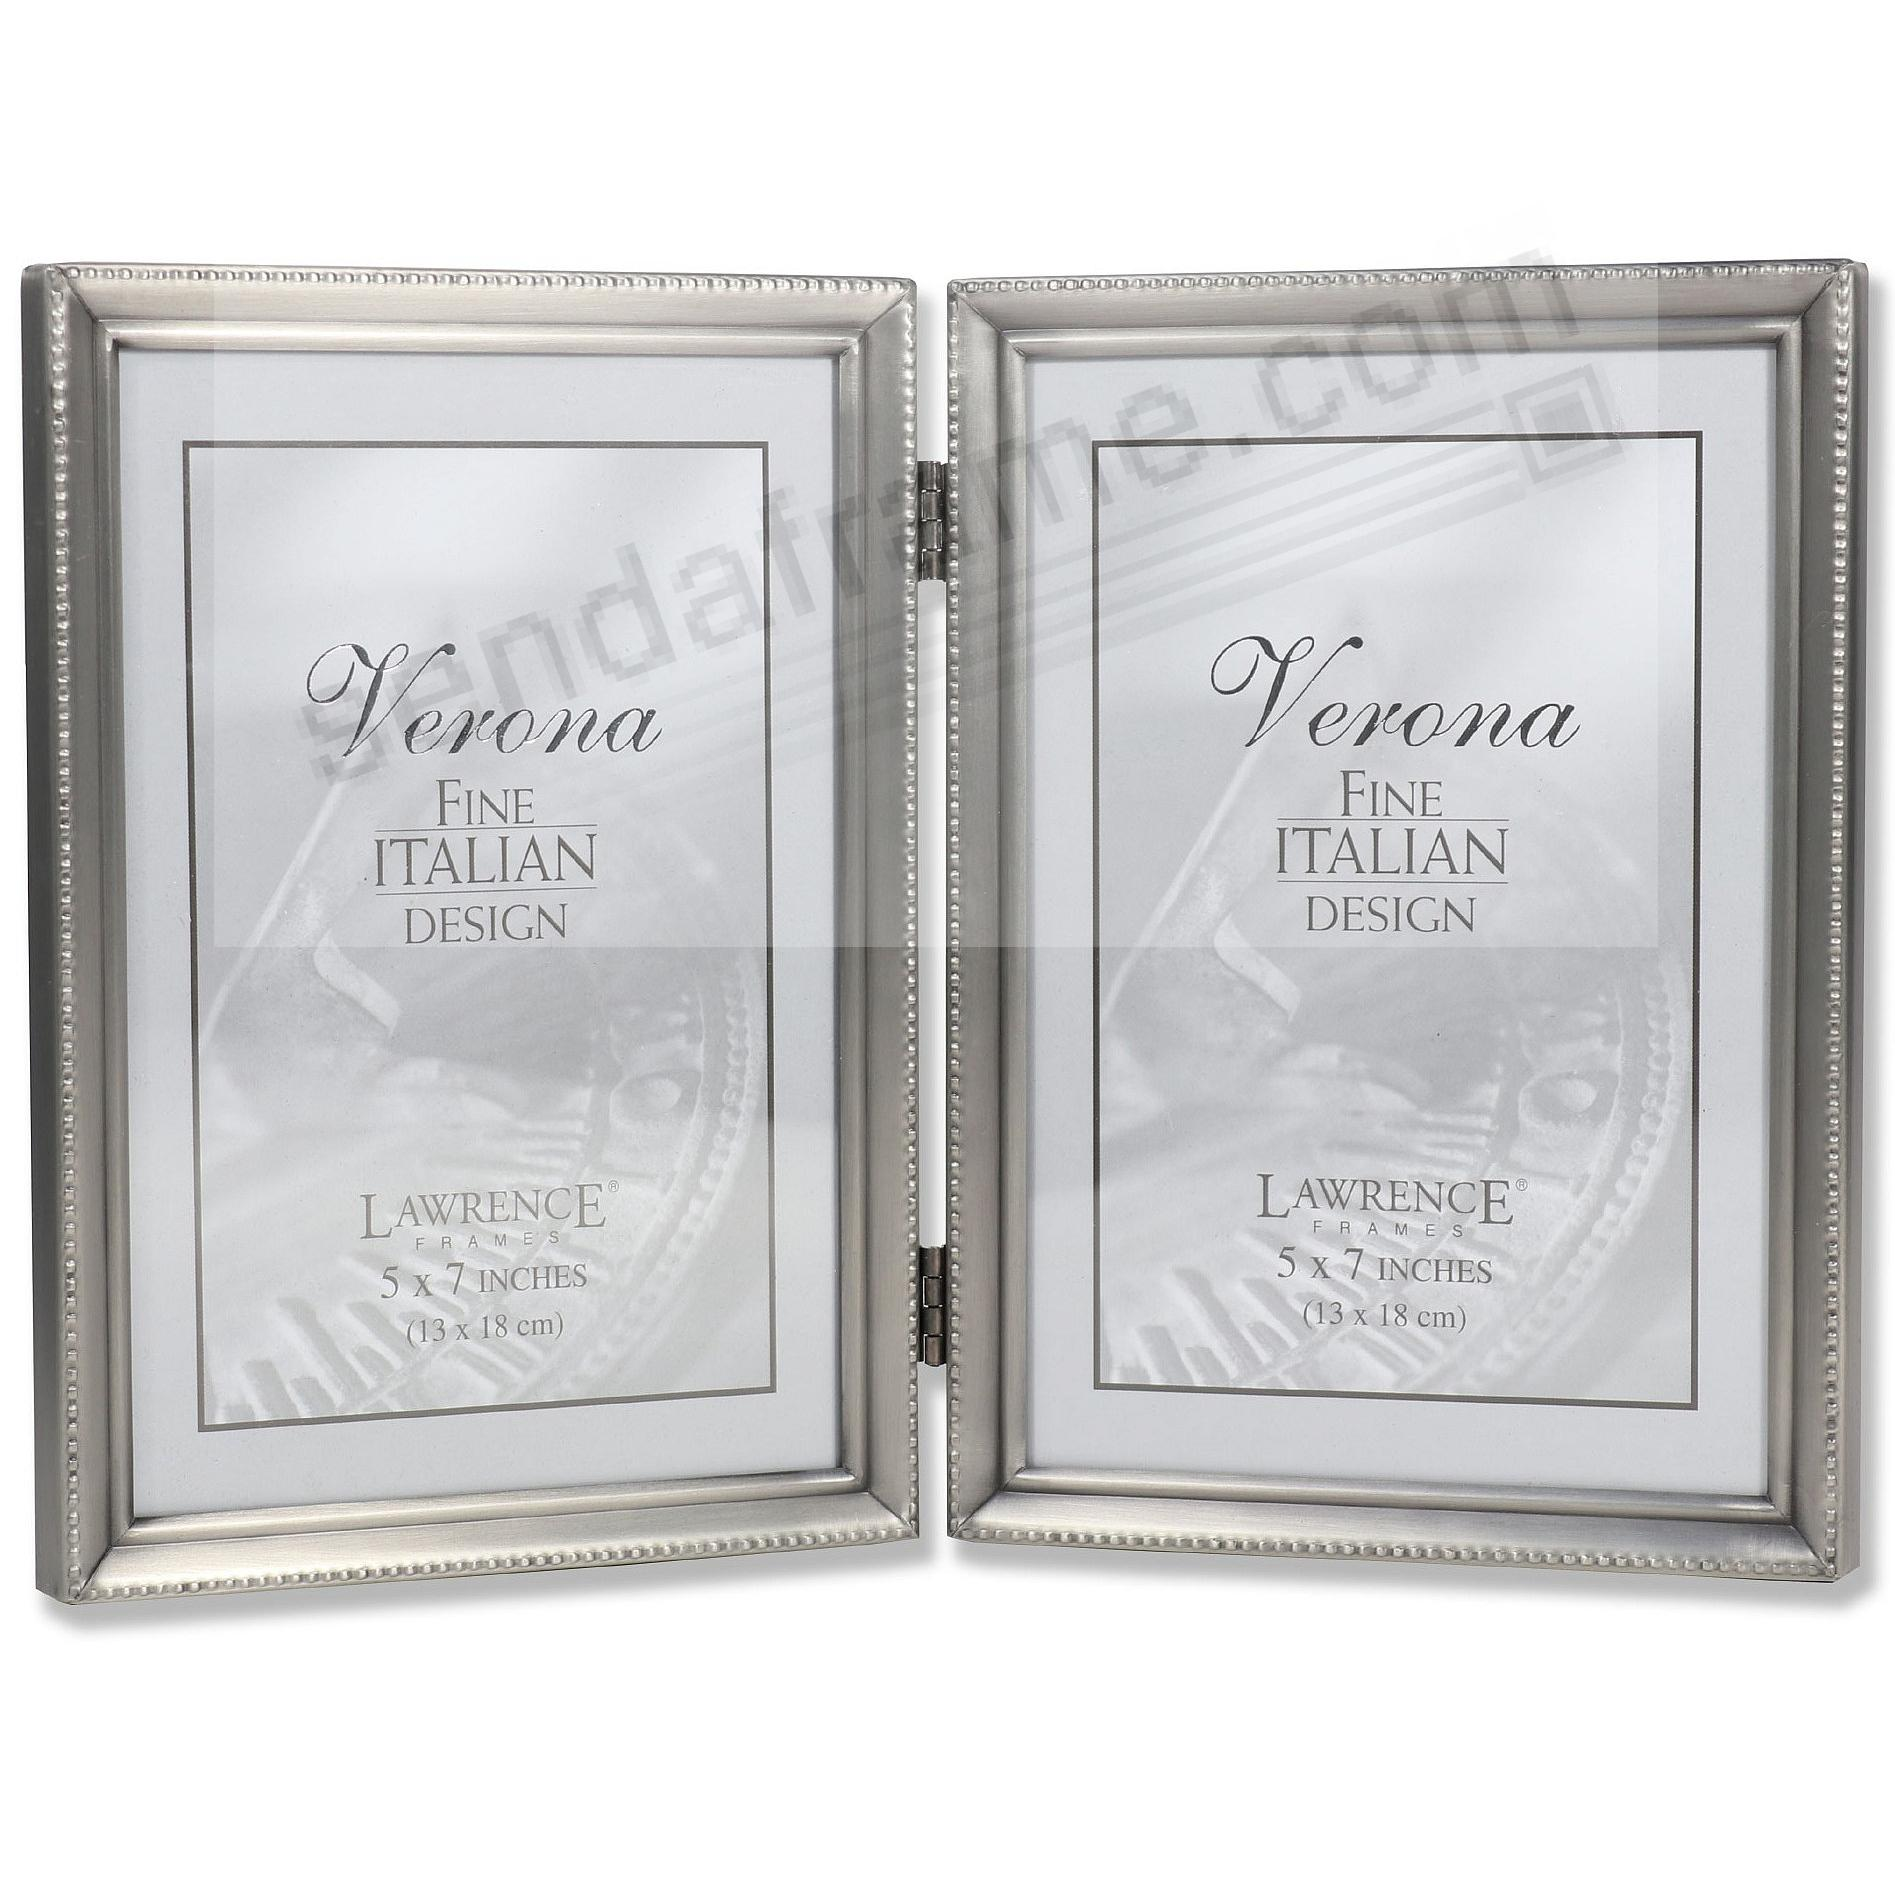 Satin antiqued pewter hinged double 5x7 frame w/caviar bead trim